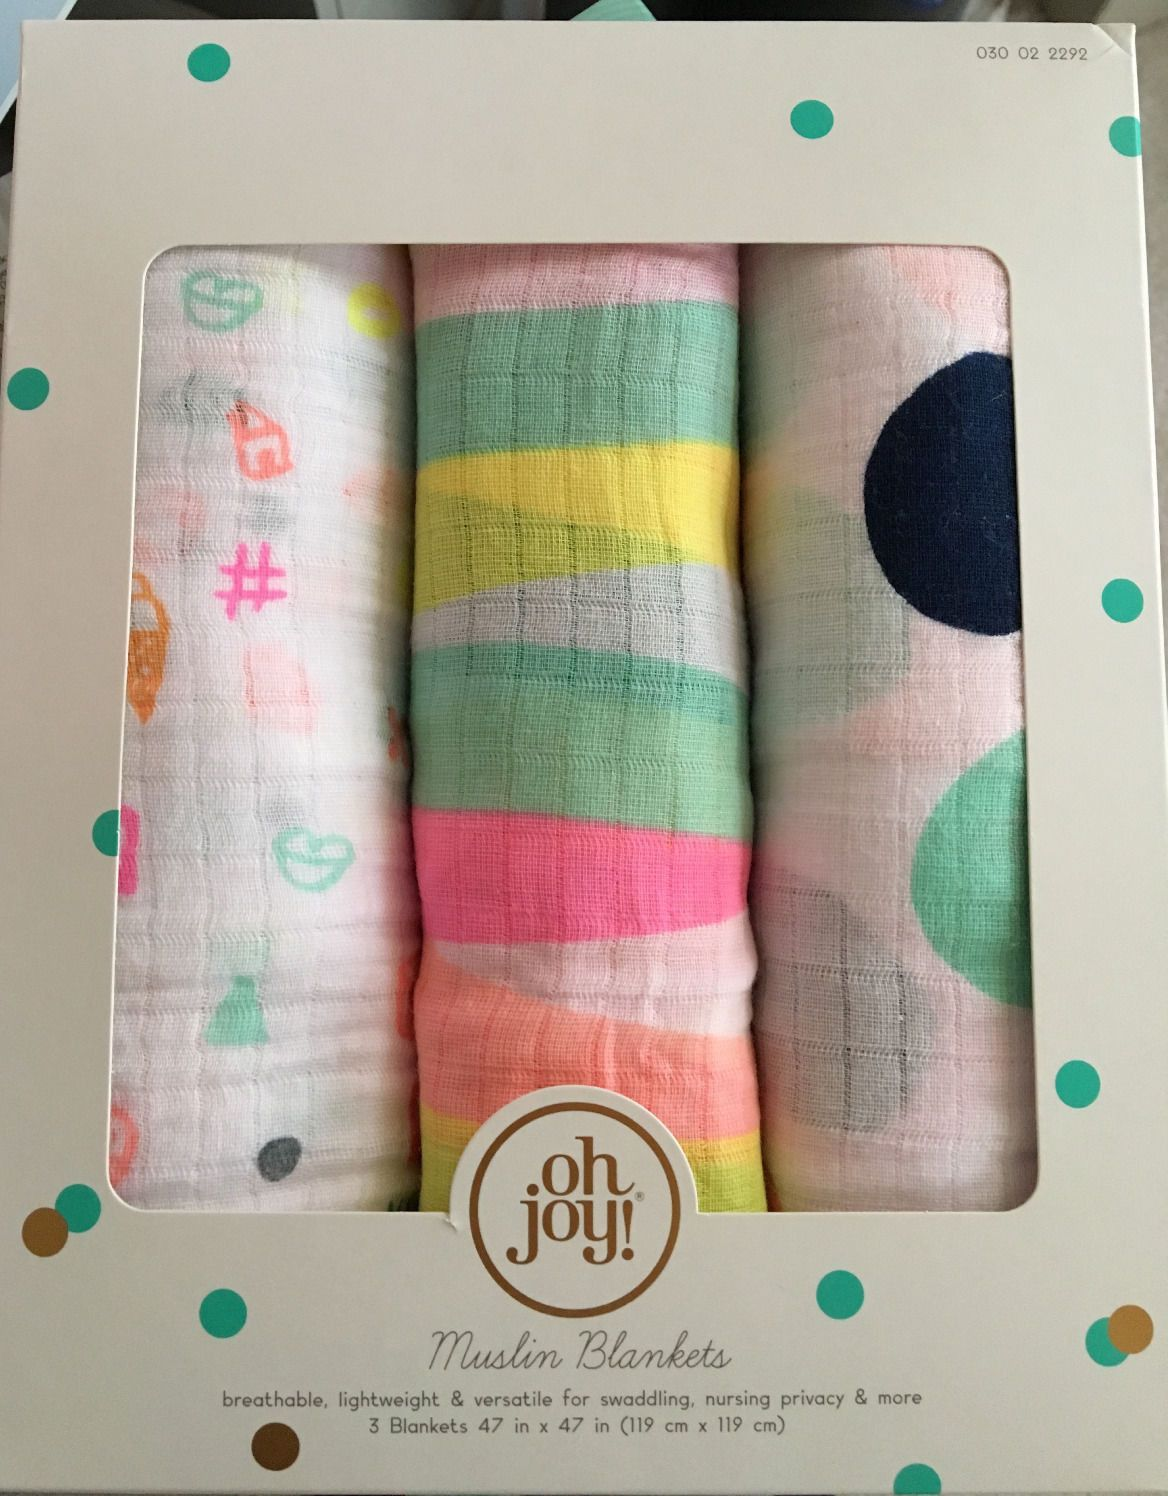 Swaddle Blankets Target Mesmerizing Nib Oh Joy Target Baby Muslin 3 Swaddling Blankets Pack Hard To Find Inspiration Design